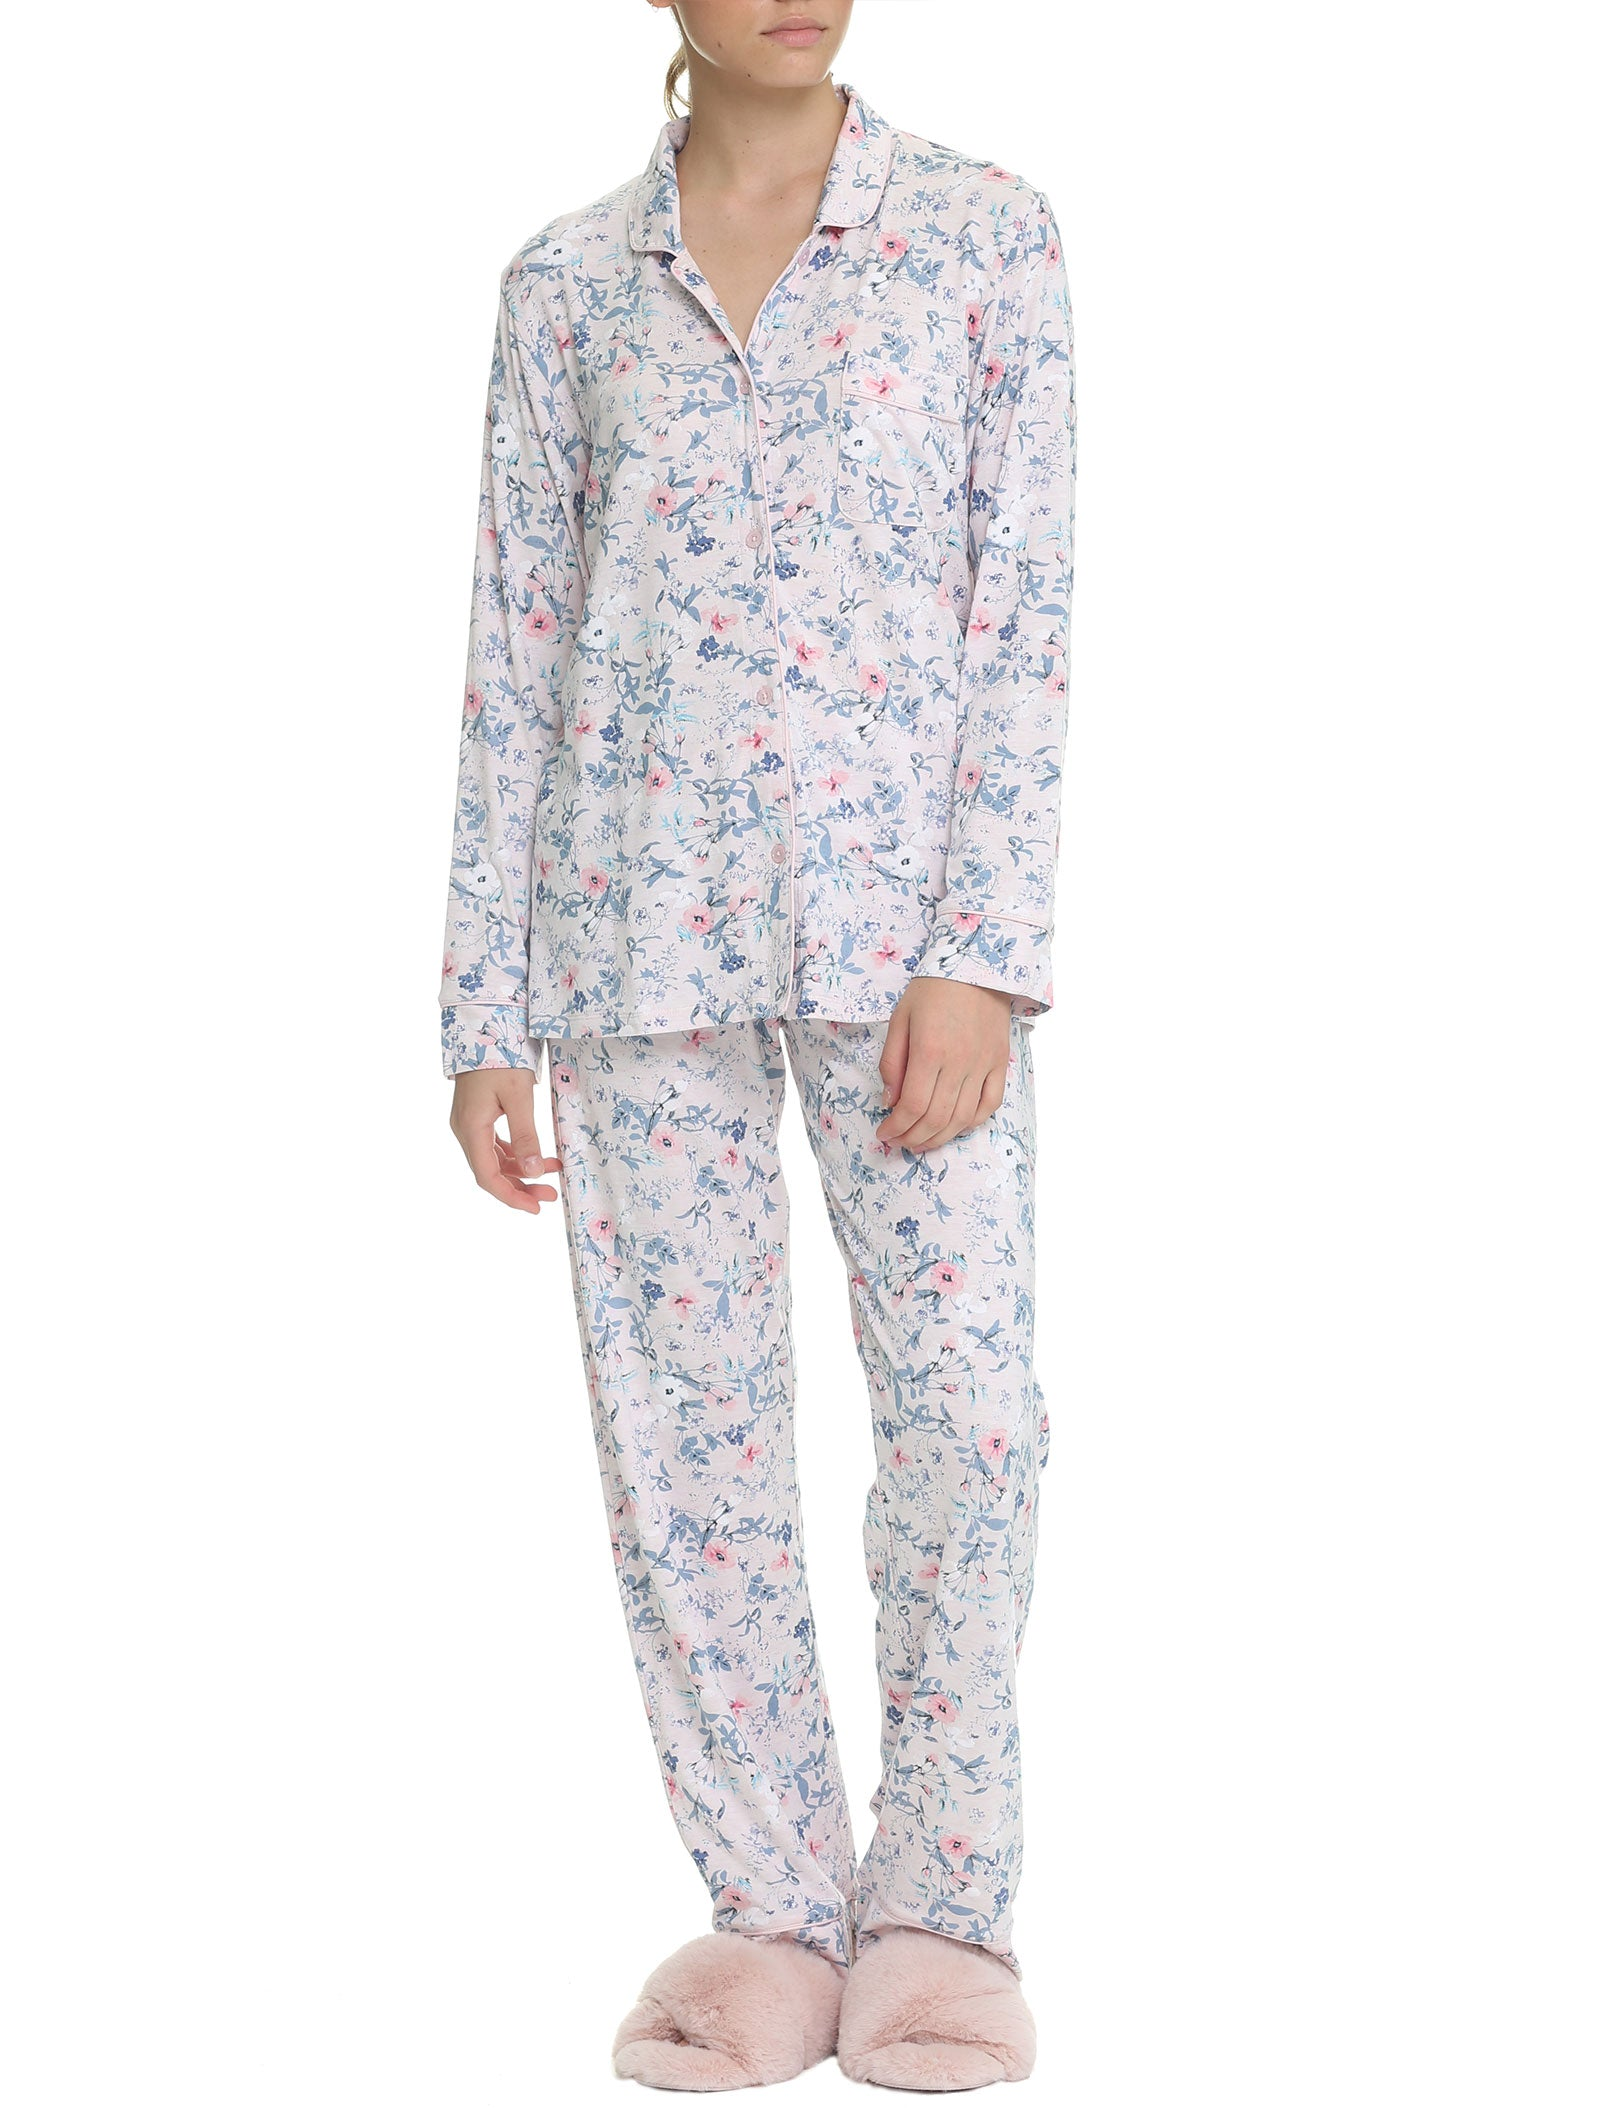 Emmy Modal Soft Kate Pajama Set